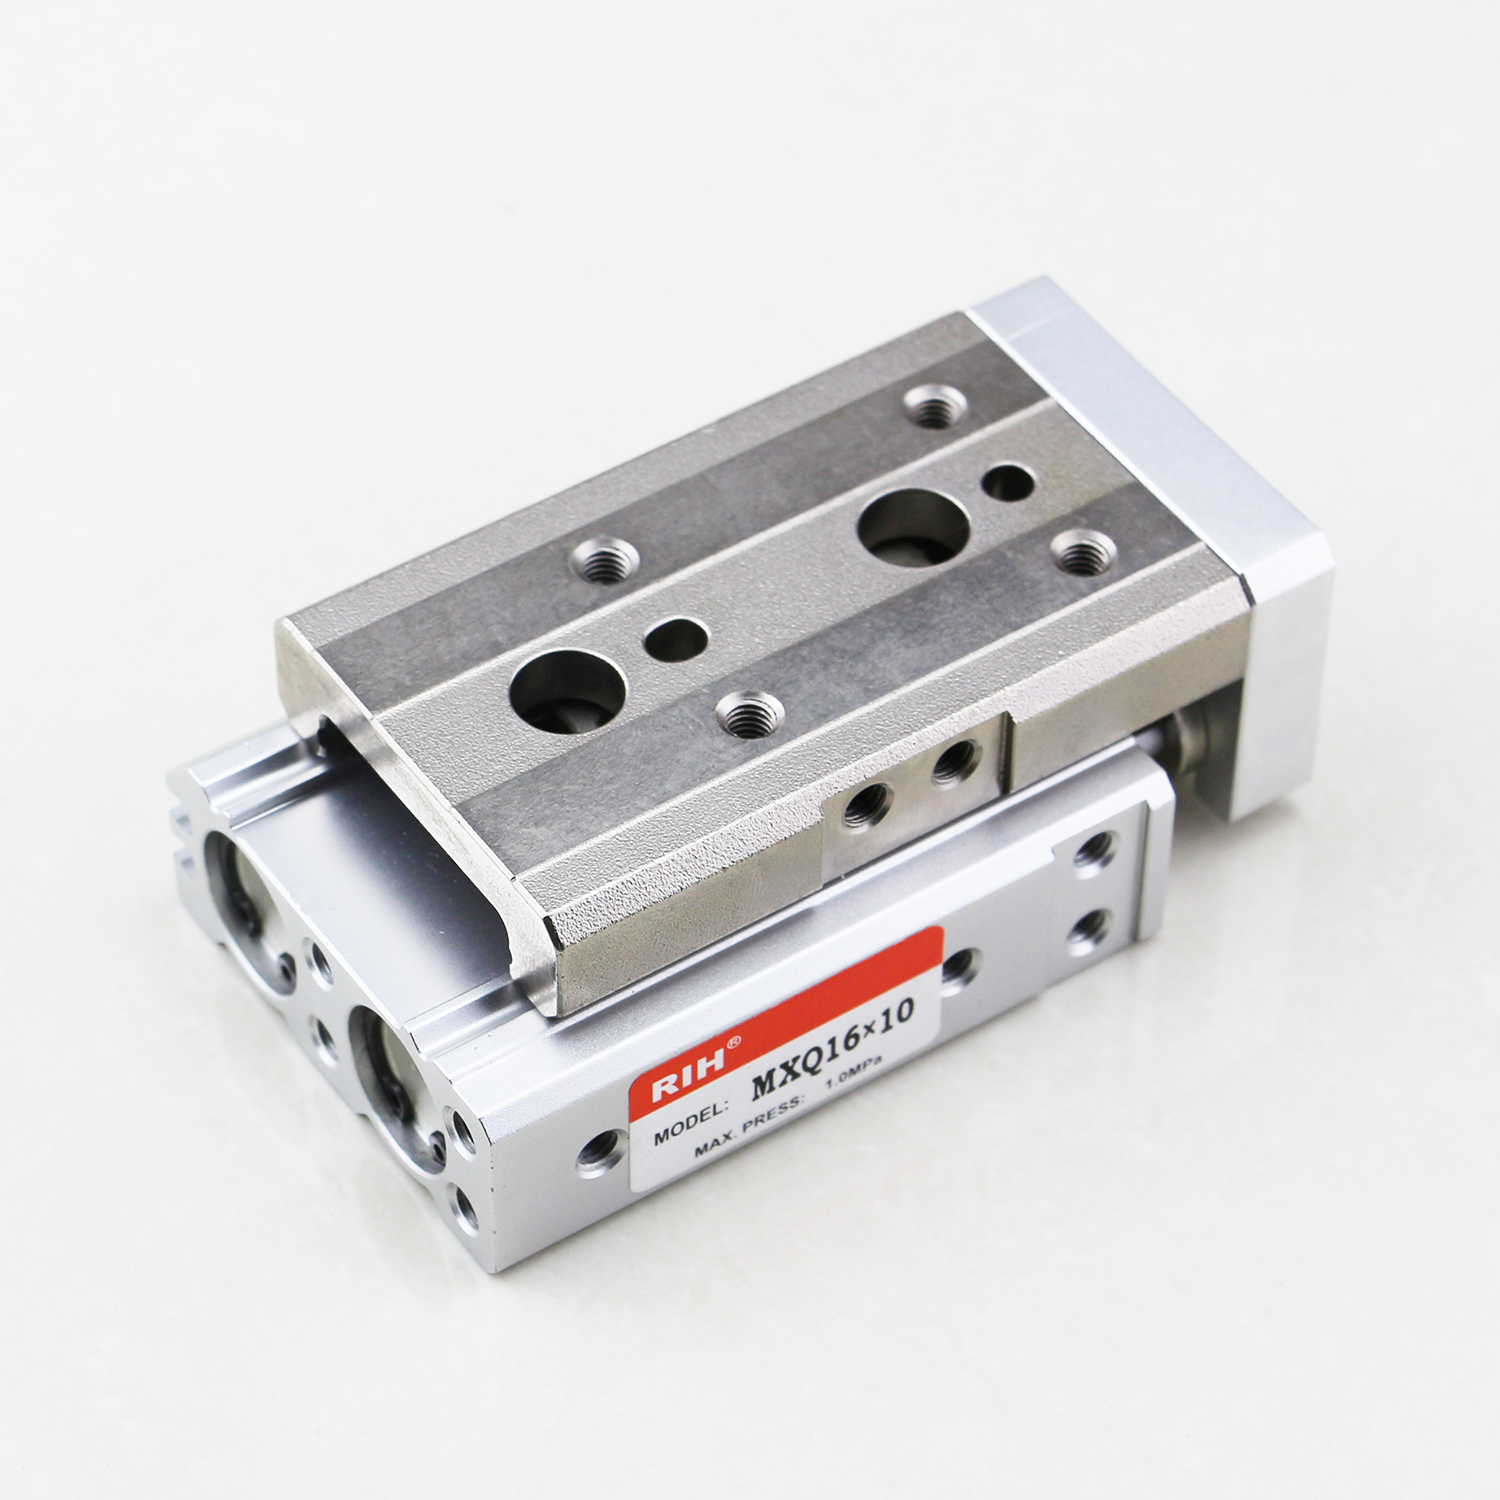 SMC Type Aluminum MXQ6 MXQ8 MXQ12 MXQ16 MXQ20 MXQ25 Pneumatic Sliding Table Cylinder Pneumatic Air Slide Cylinder